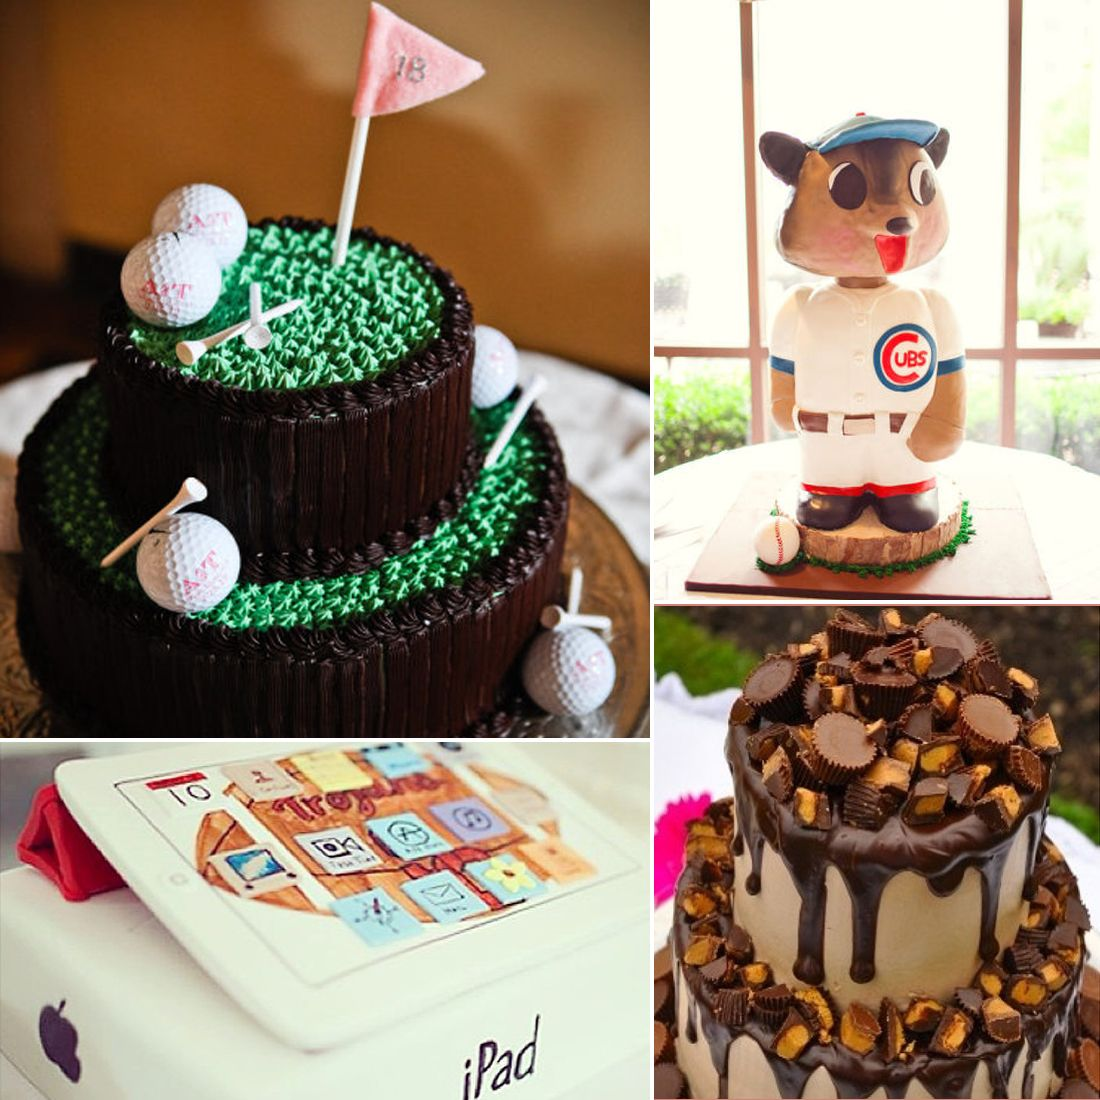 Wedding Cake 101 An Introduction To Wedding Cakes: 20+ Creative And Quirky Groom Cakes (With Images)